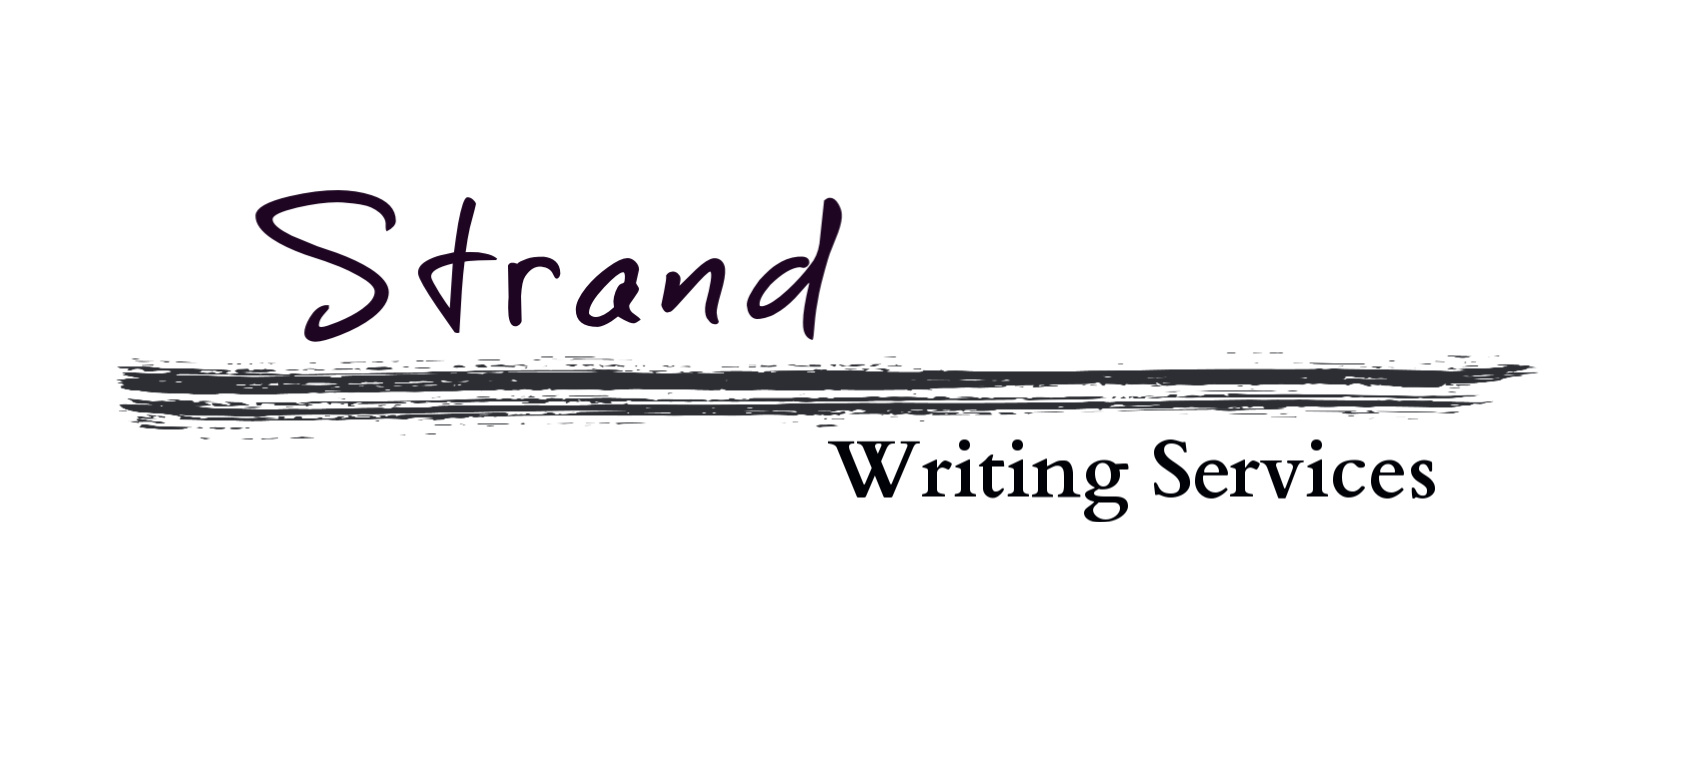 Strand Writing Services LOGO Reserved (1)